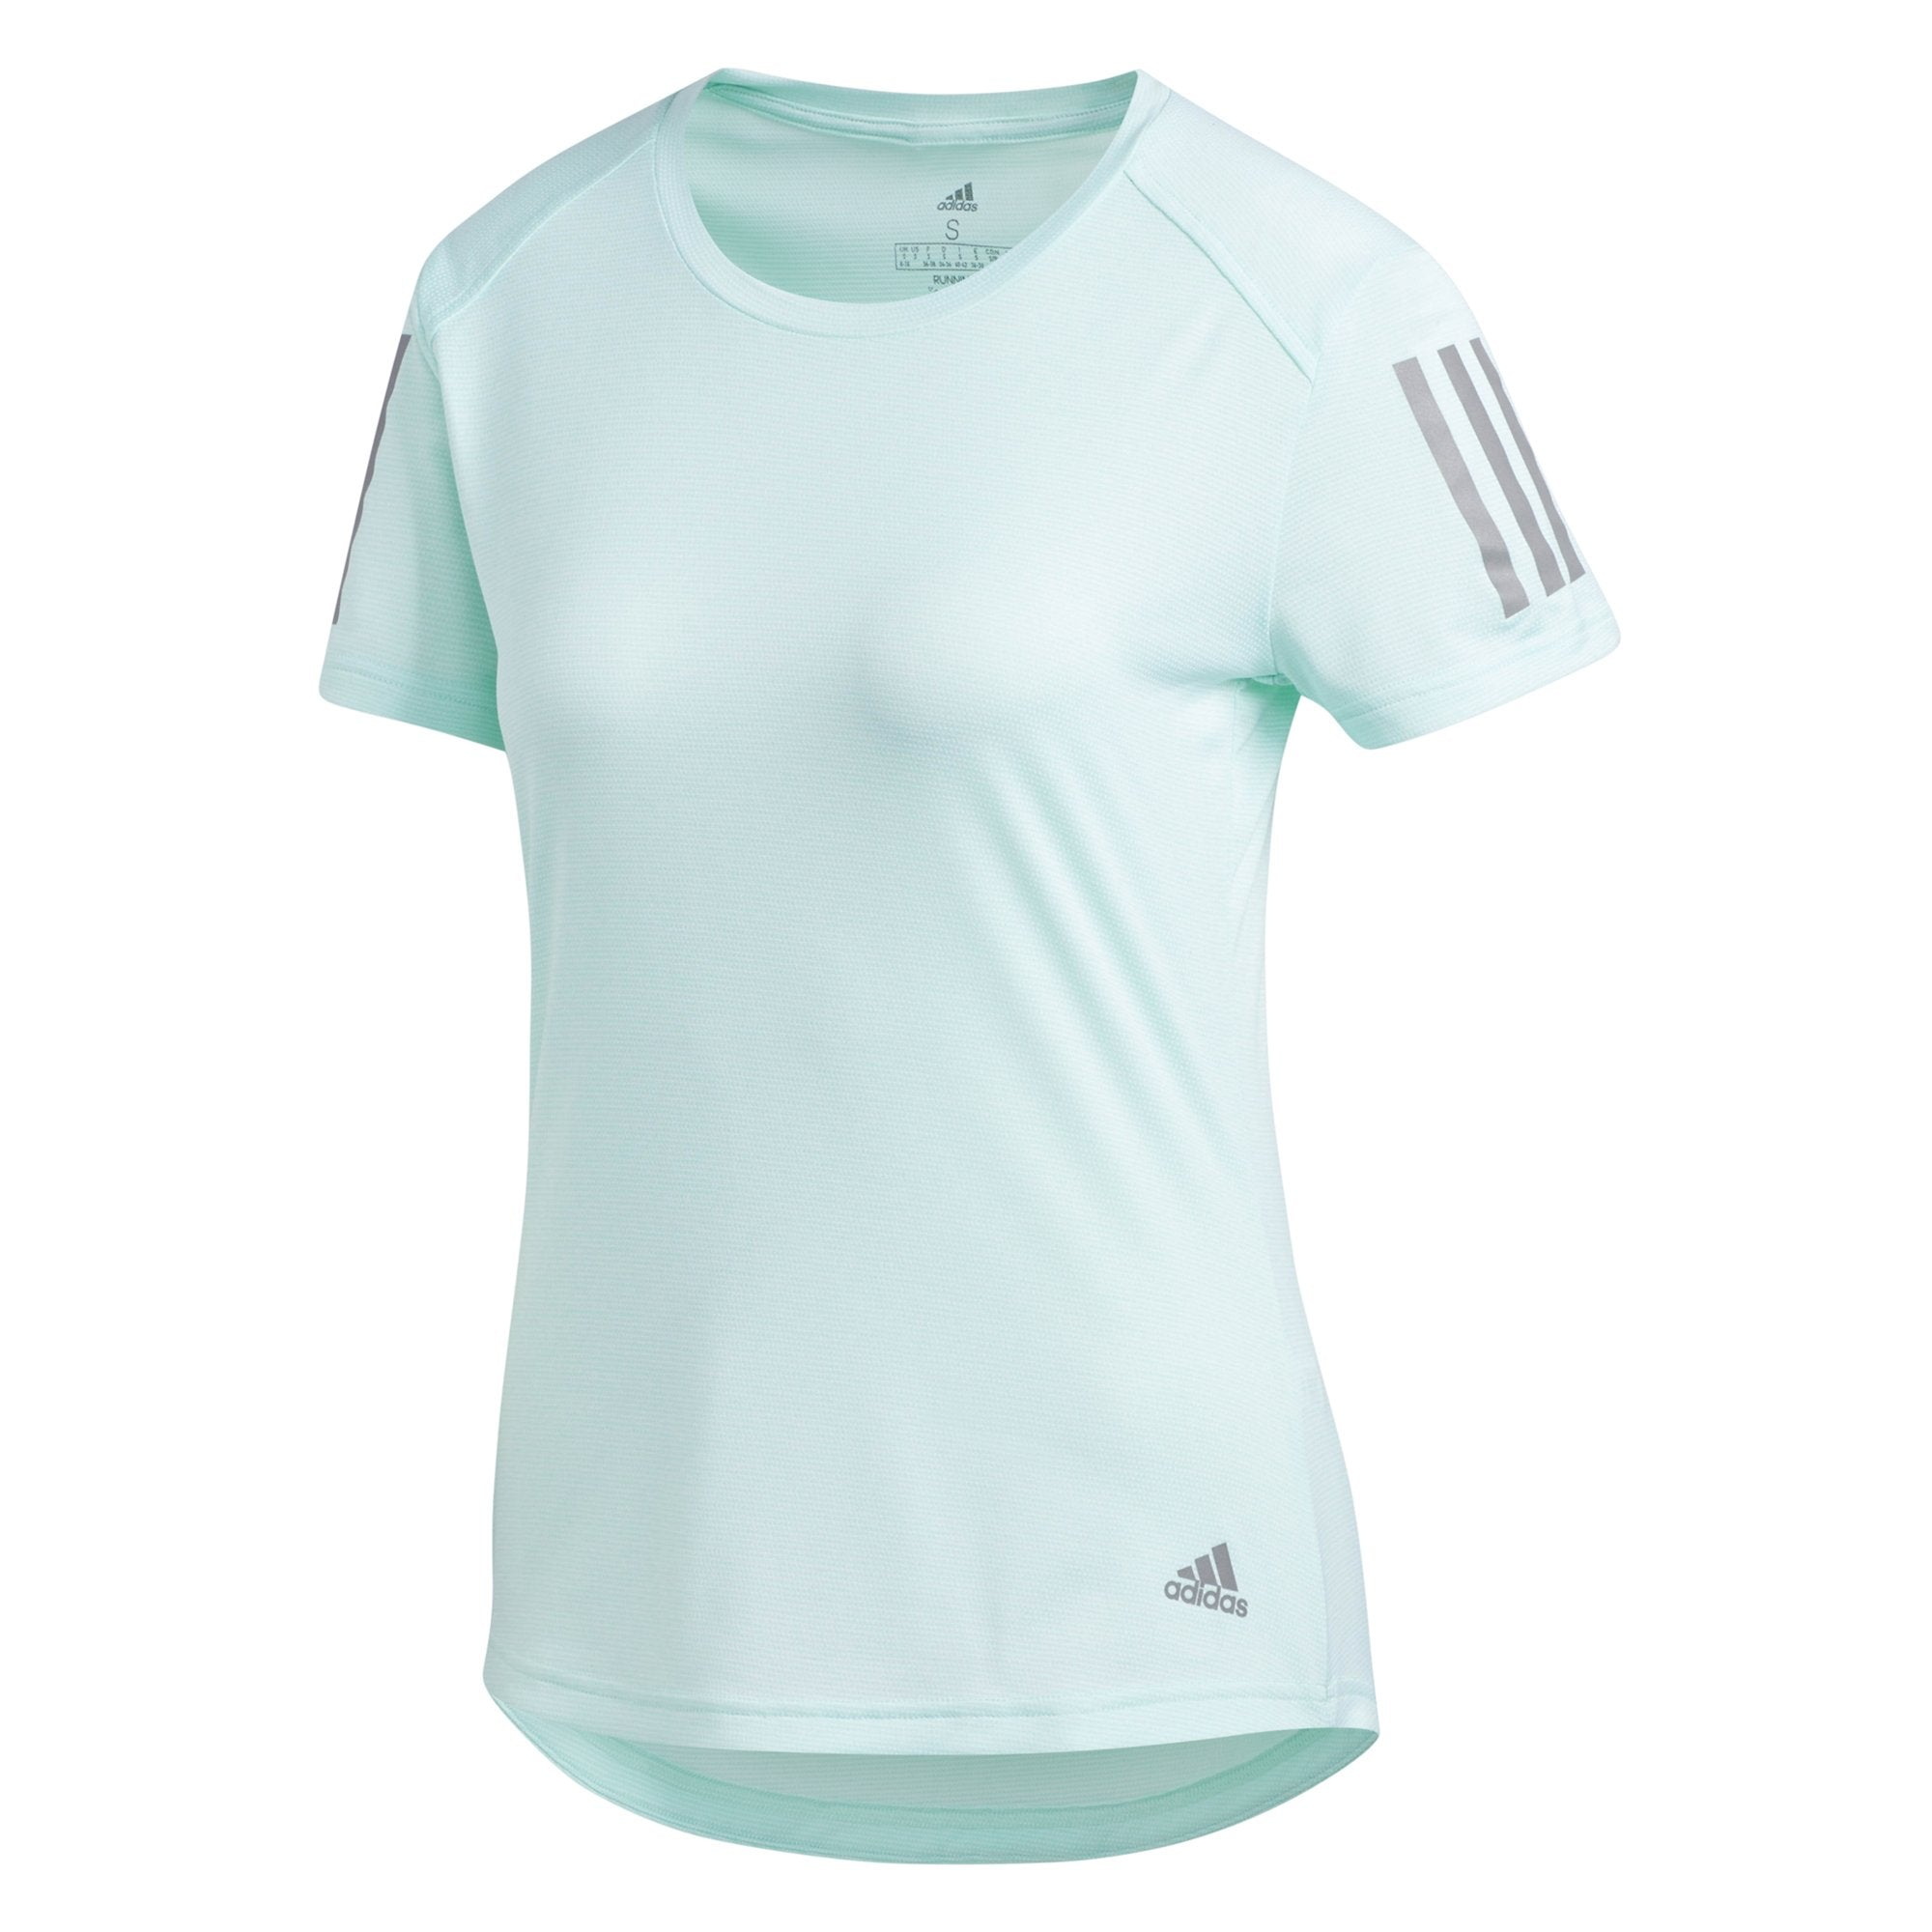 1dfd8c47543 Buy Women's T-Shirts & Tops & Activewear Online | Royal Sporting House